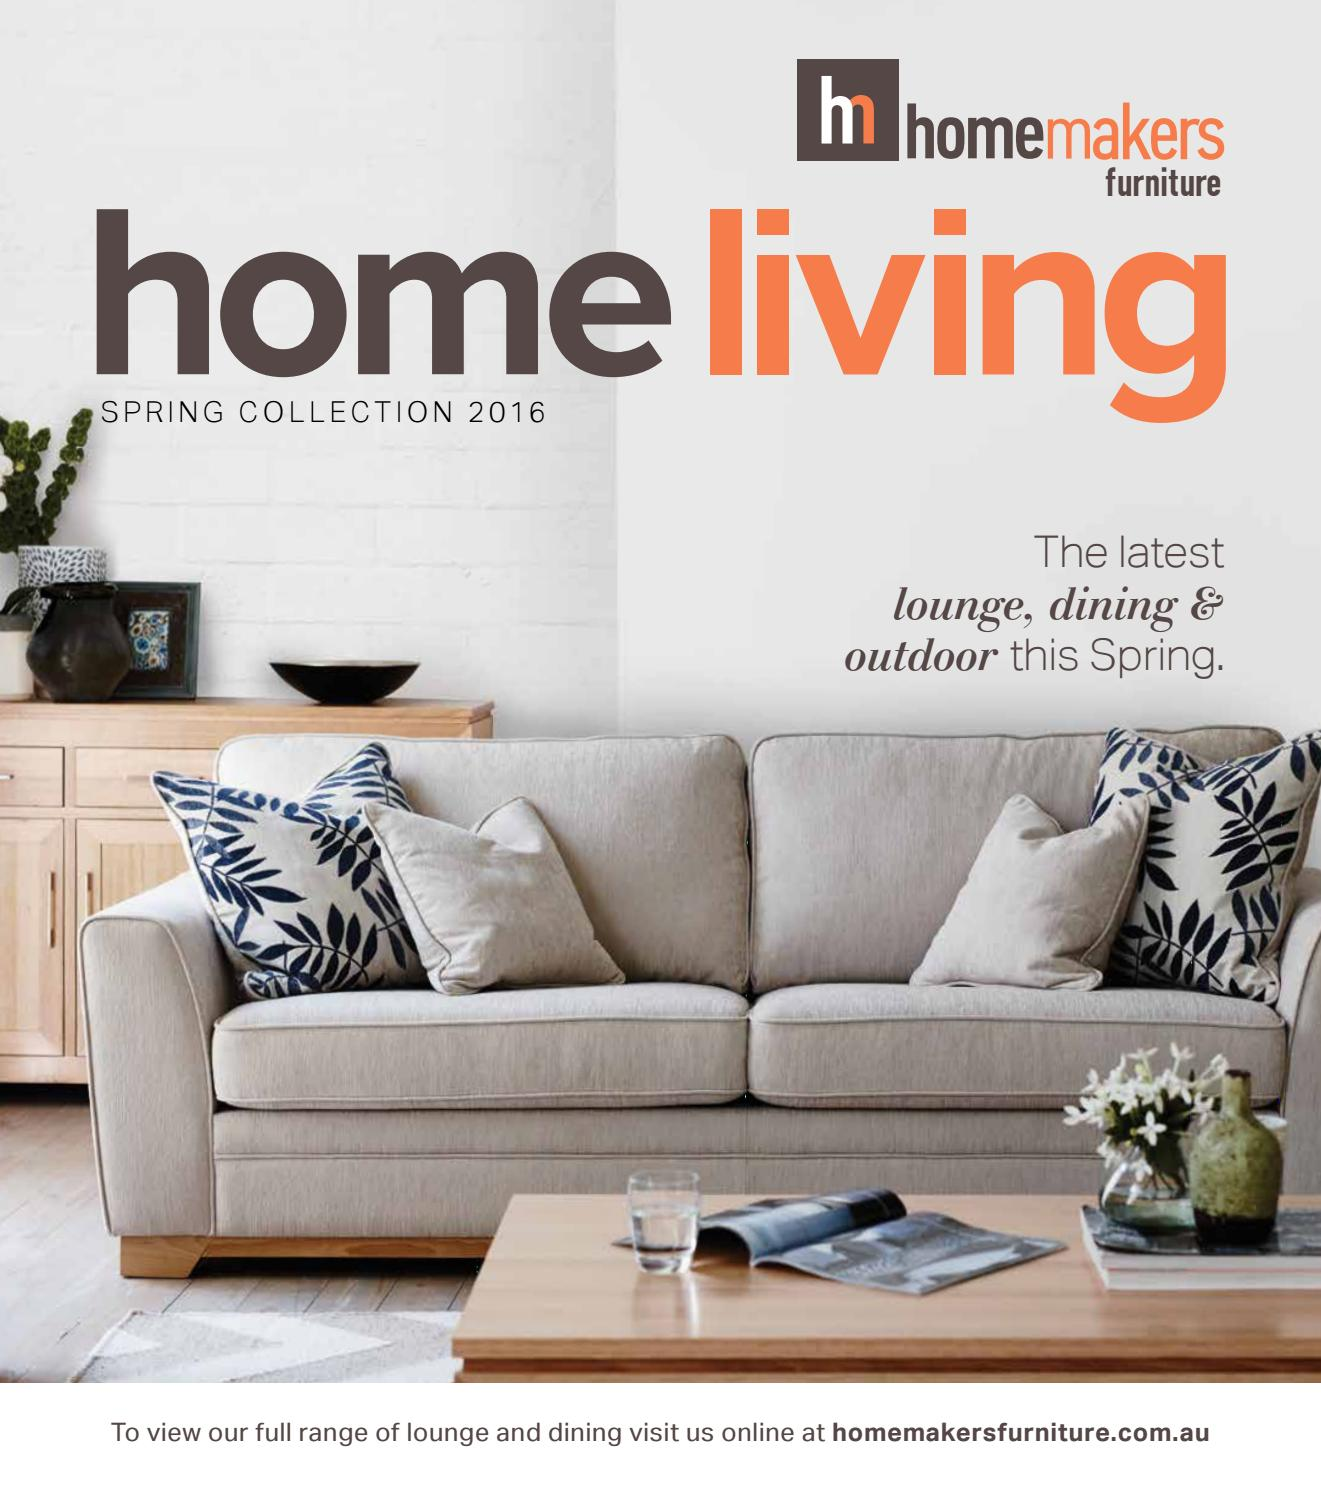 Homemakers Spring  Home Living  Catalogue 2016. Berkowitz Furniture Sale Catalogue October 2014 by Lachie Dunn   issuu